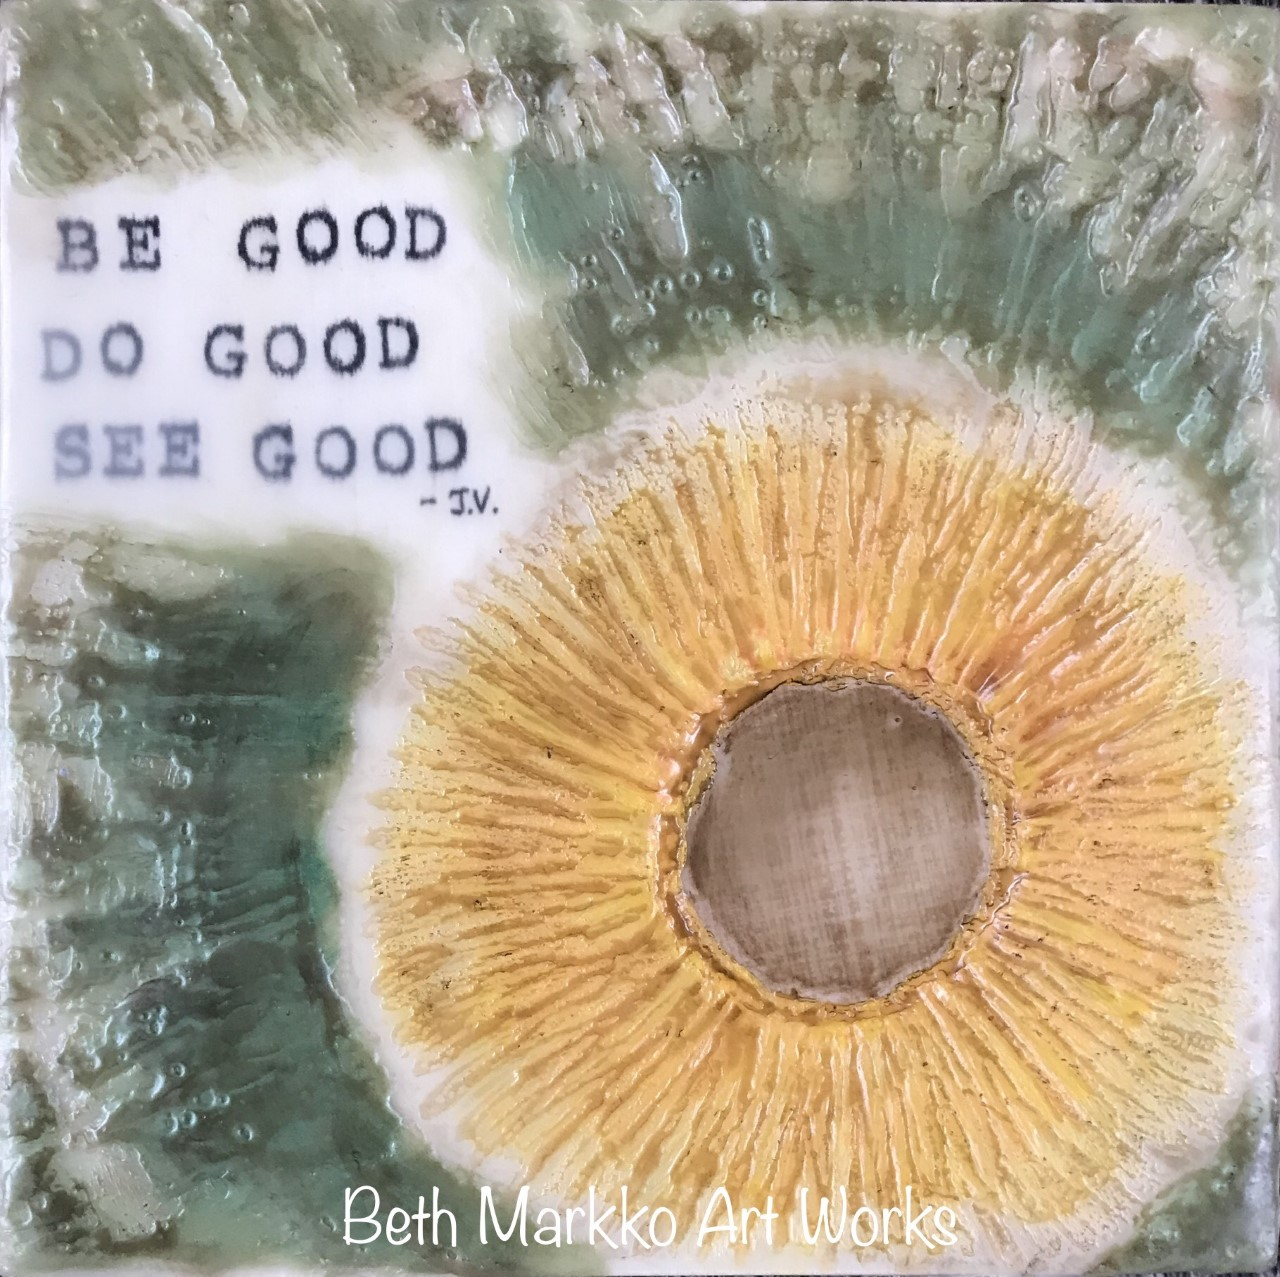 Be Good Do Good See Good